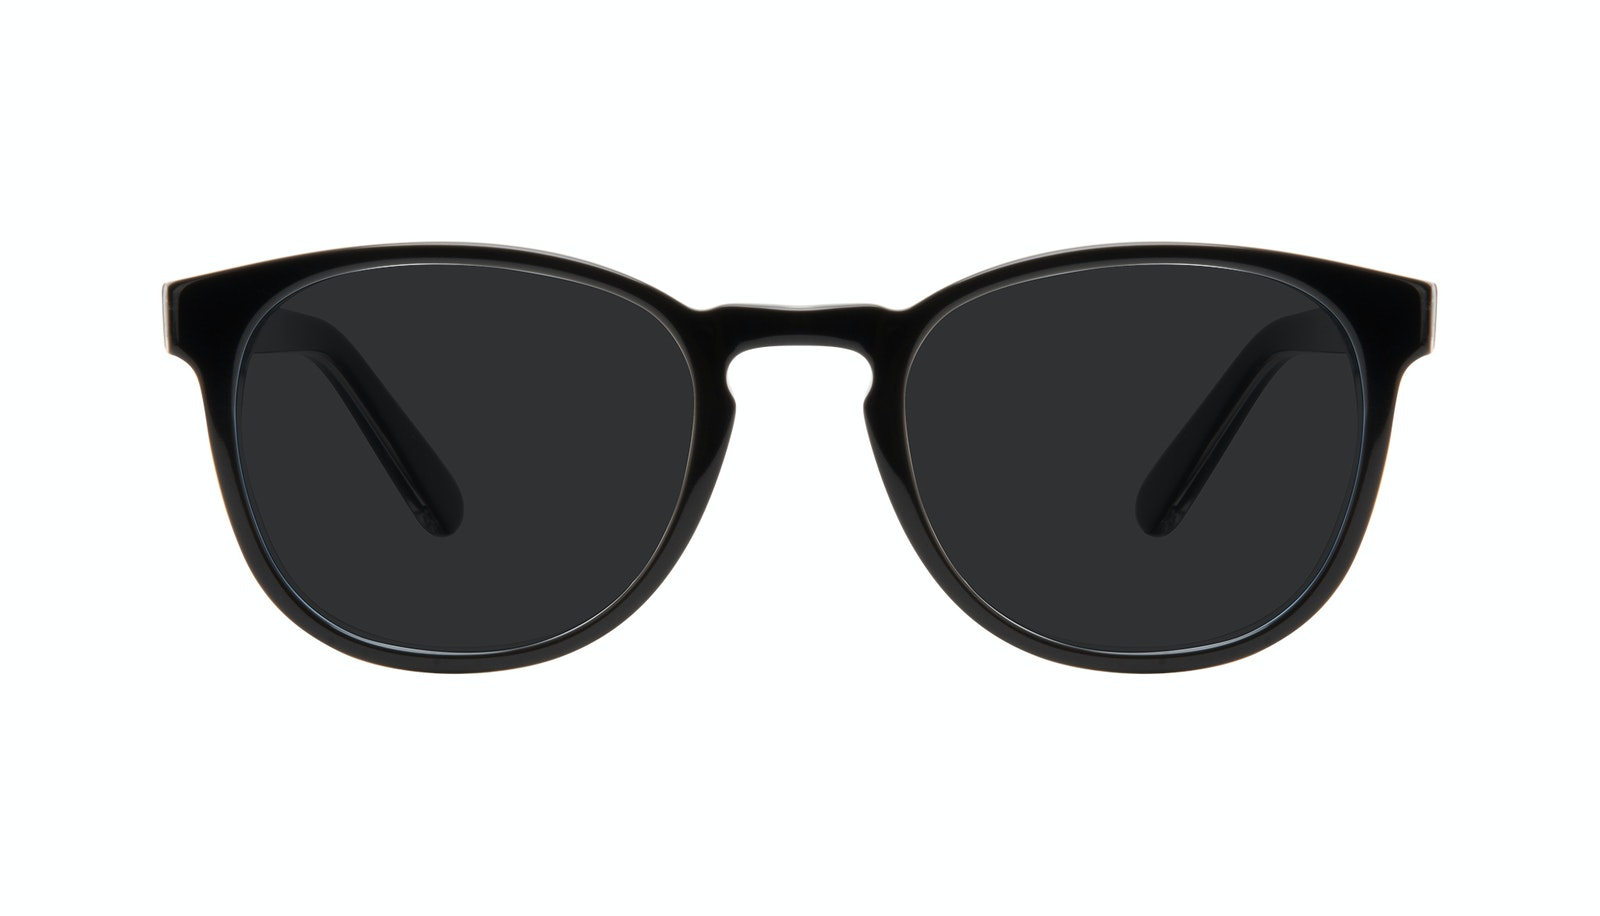 Affordable Fashion Glasses Round Sunglasses Men Boreal Black Ice